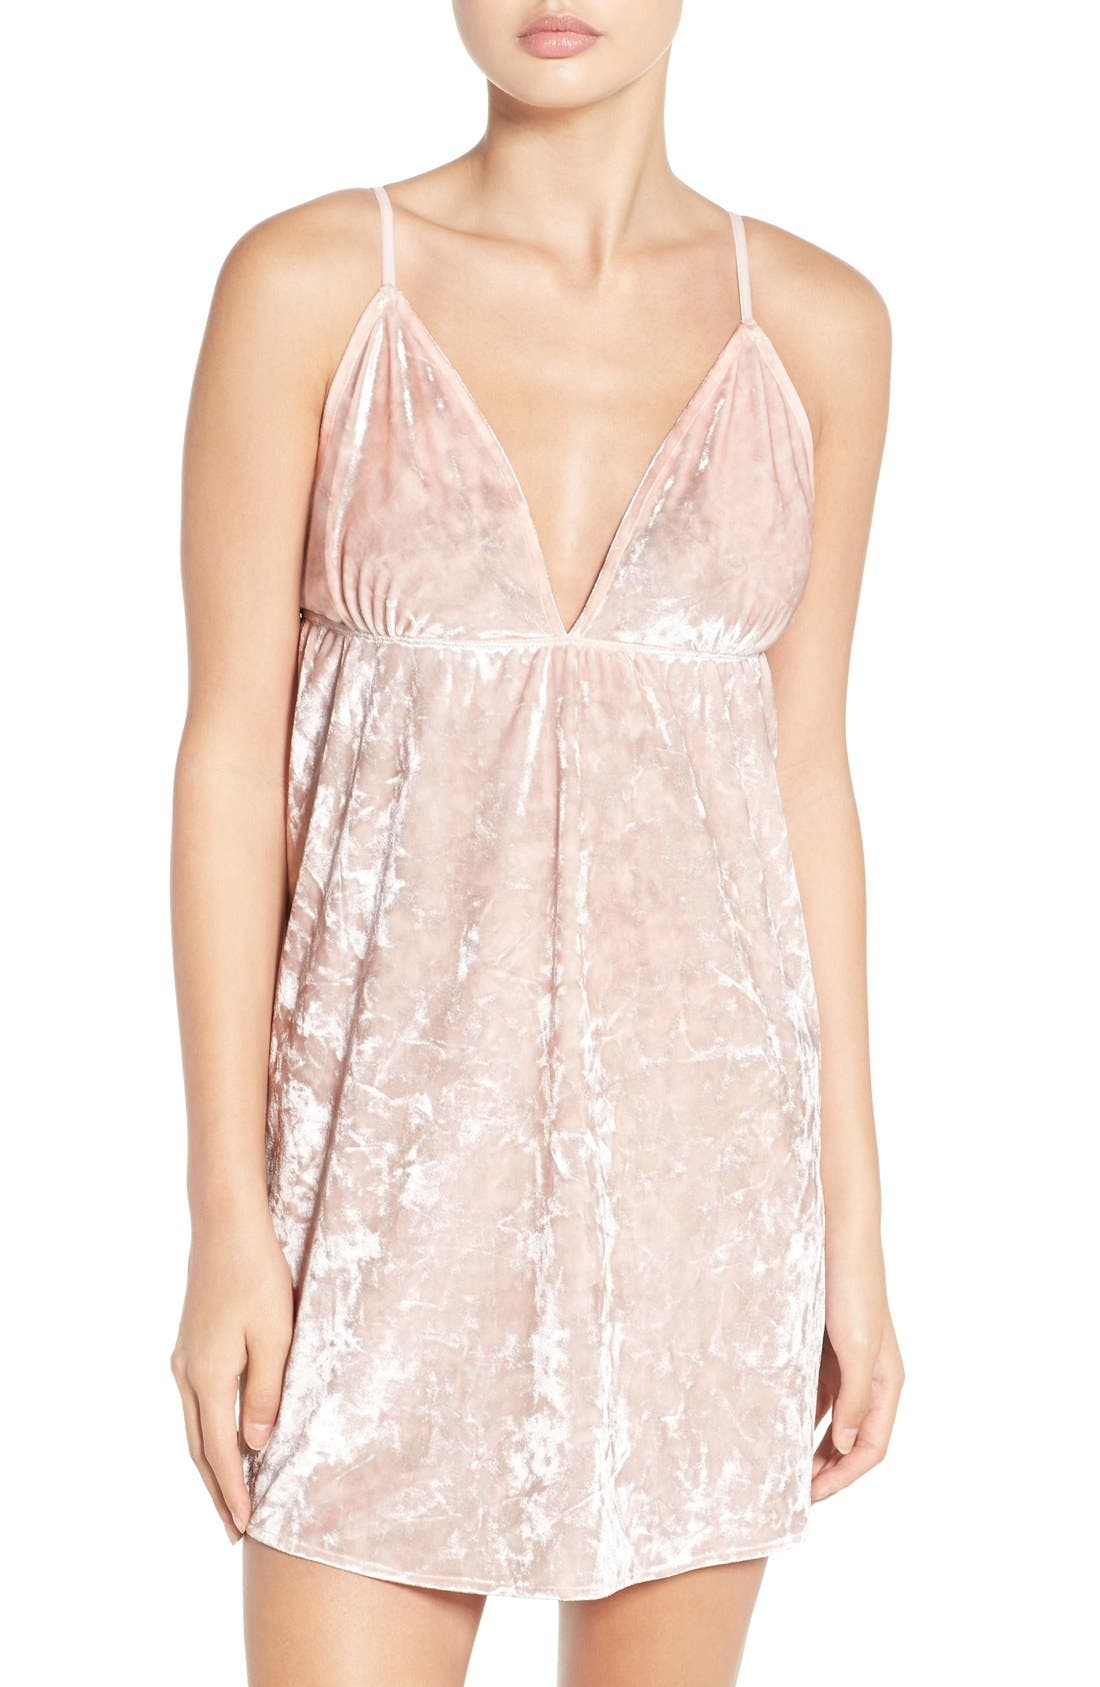 Alternate Image 1 Selected - Chelsea28 Crushed Velvet Chemise